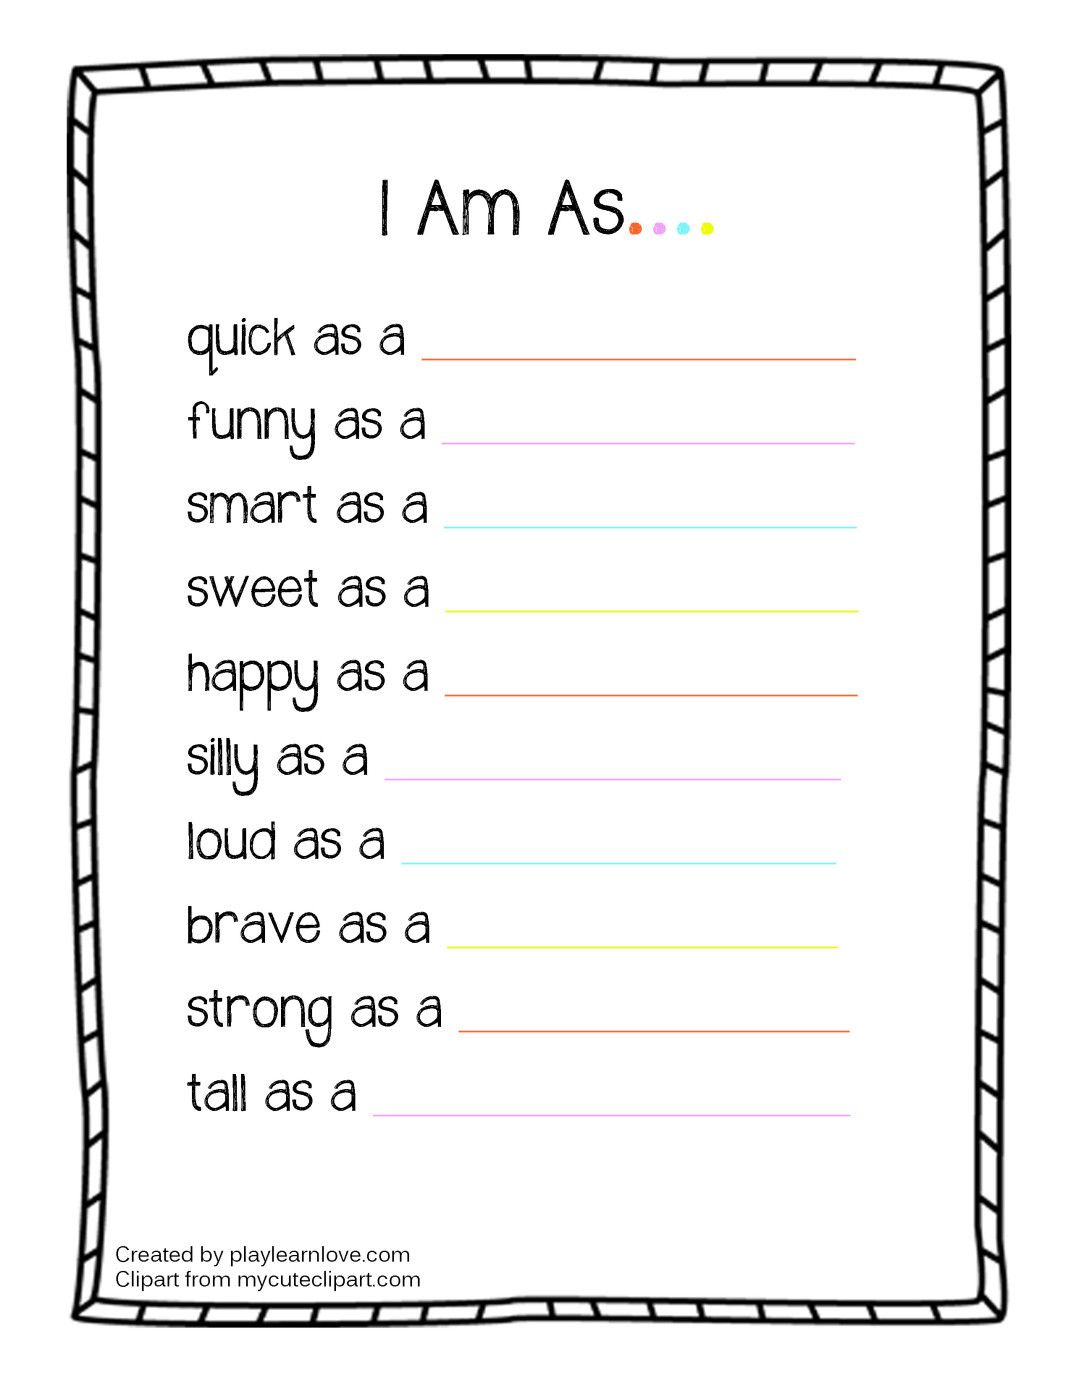 I Am As Worksheet From Play Learn Love With Images